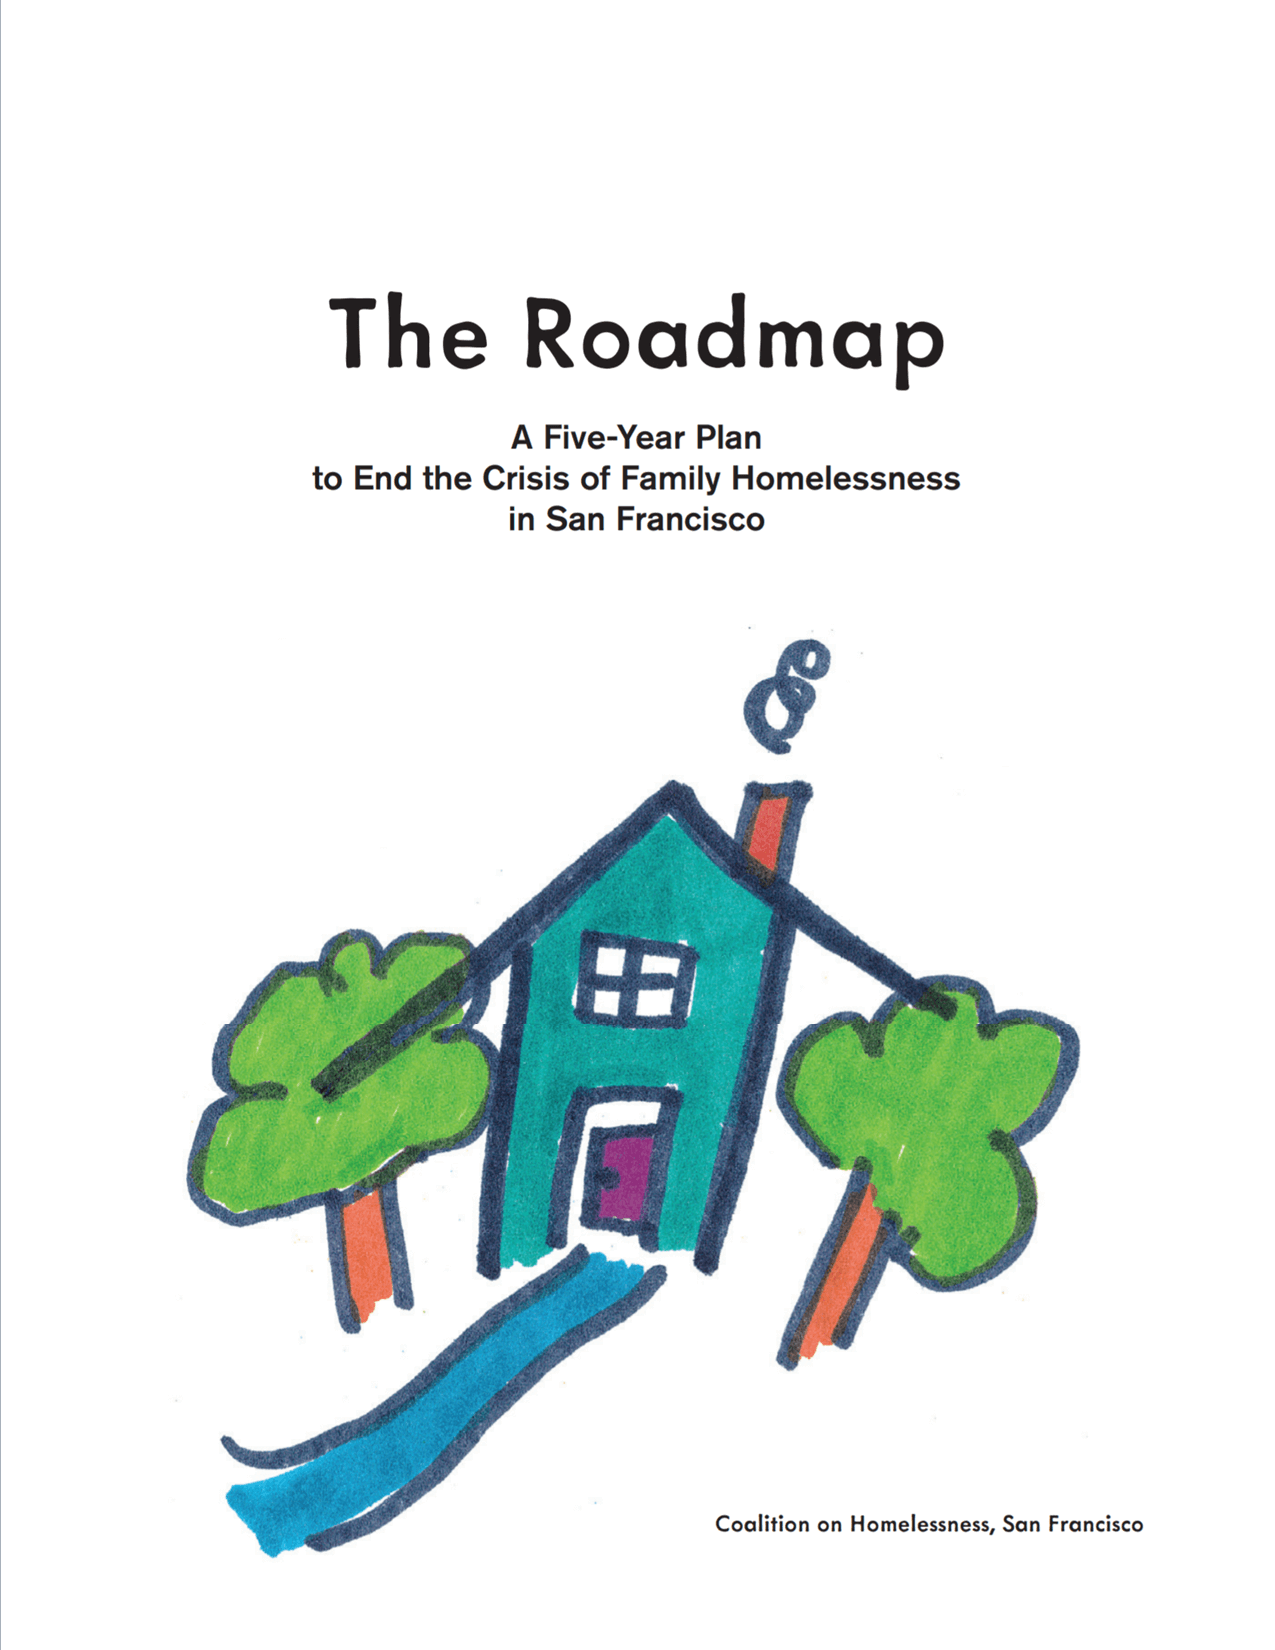 The Roadmap: A Five-Year Plan to End the Crisis of Family Homelessness in San Francisco